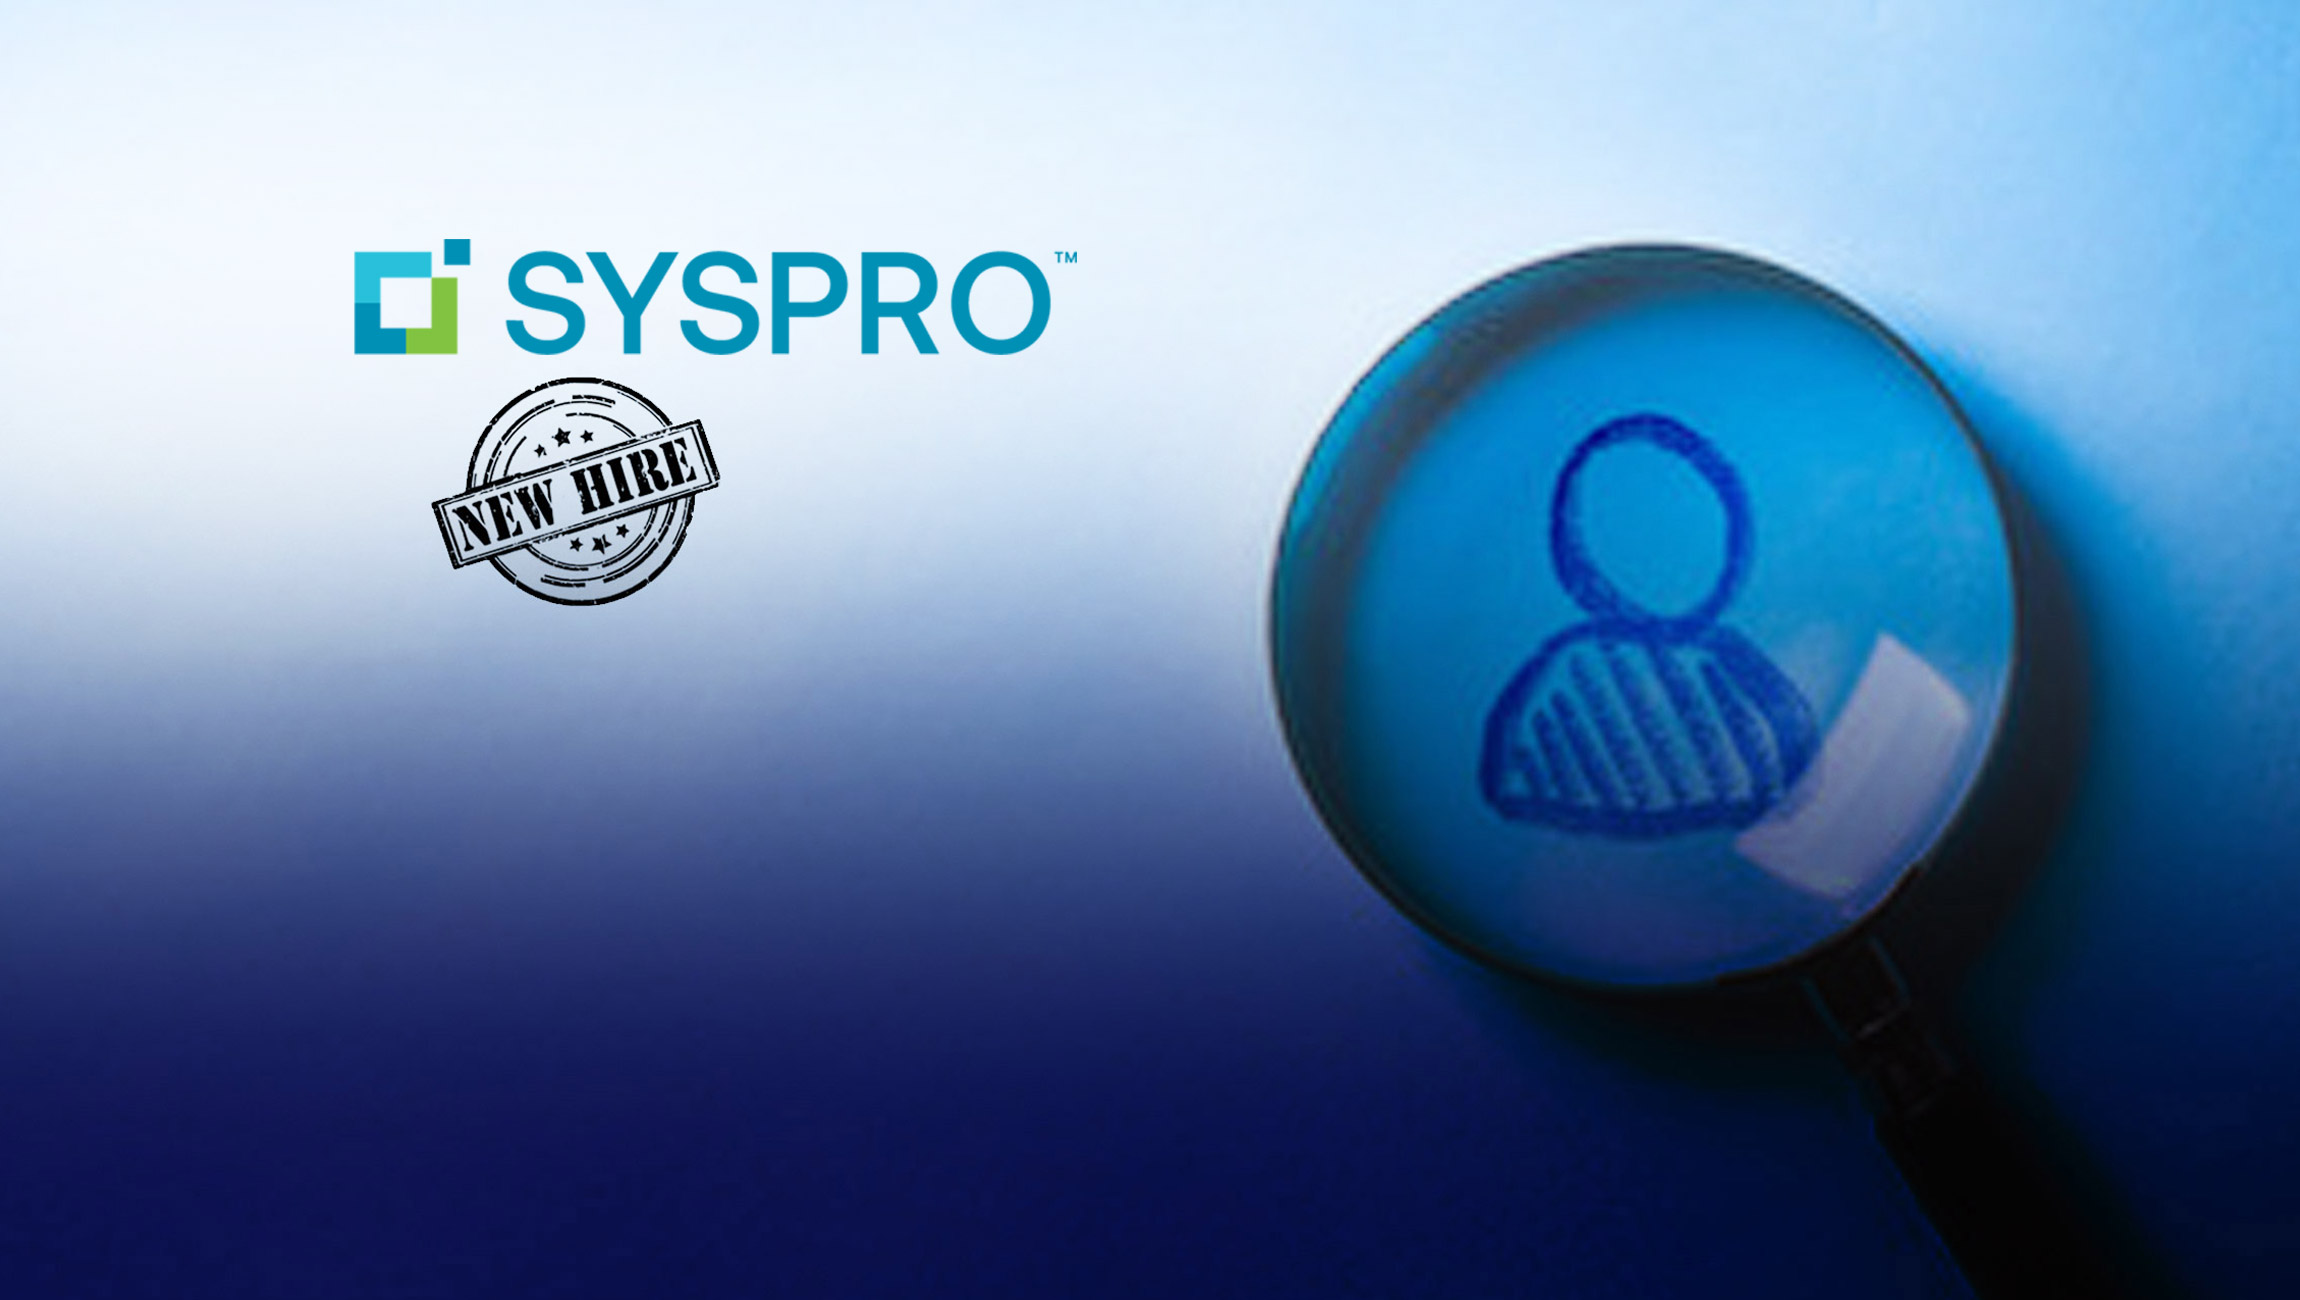 SYSPRO-USA-Appoints-Brian-Goodman-as-Chief-Customer-Officer-to-Lead-Customer-Success